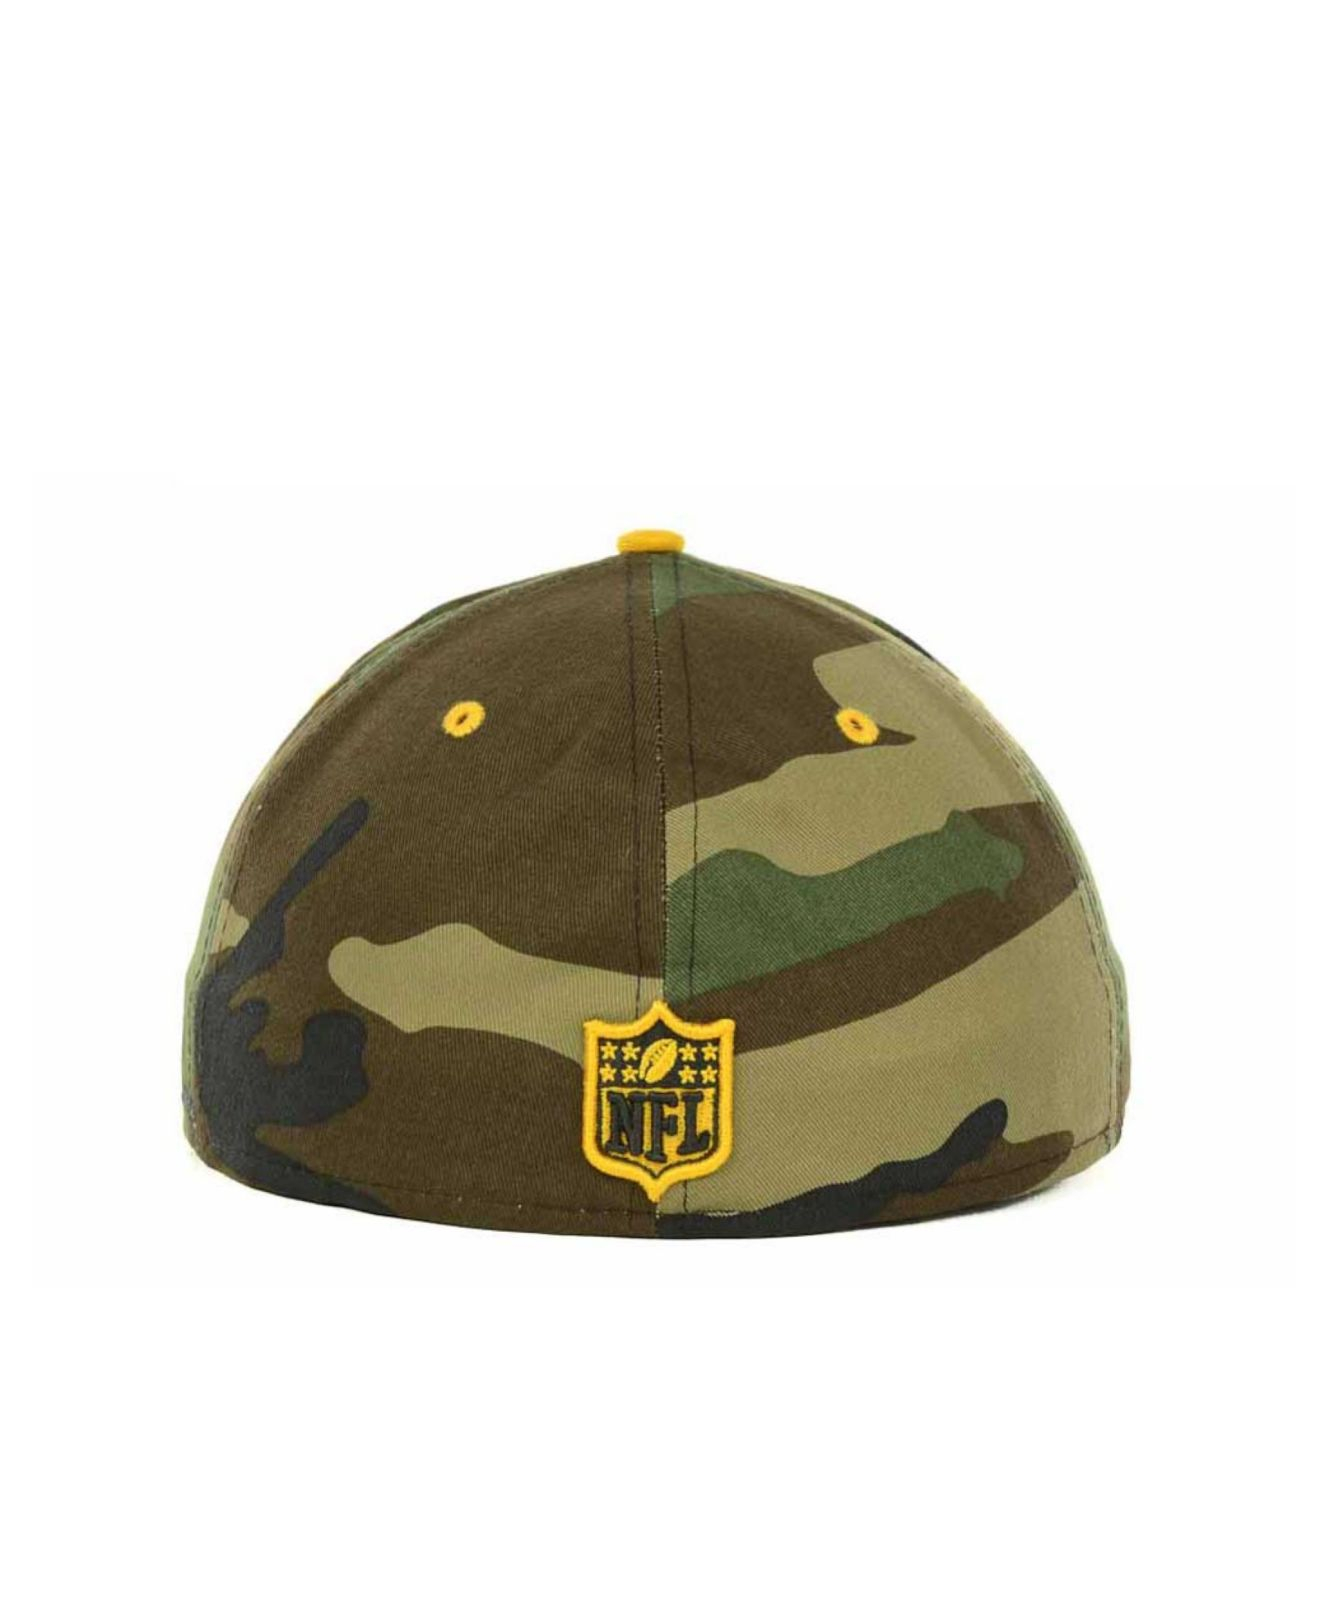 8bff1cea29f Lyst - Ktz Pittsburgh Steelers Camo Pop 59Fifty Cap in Green for Men